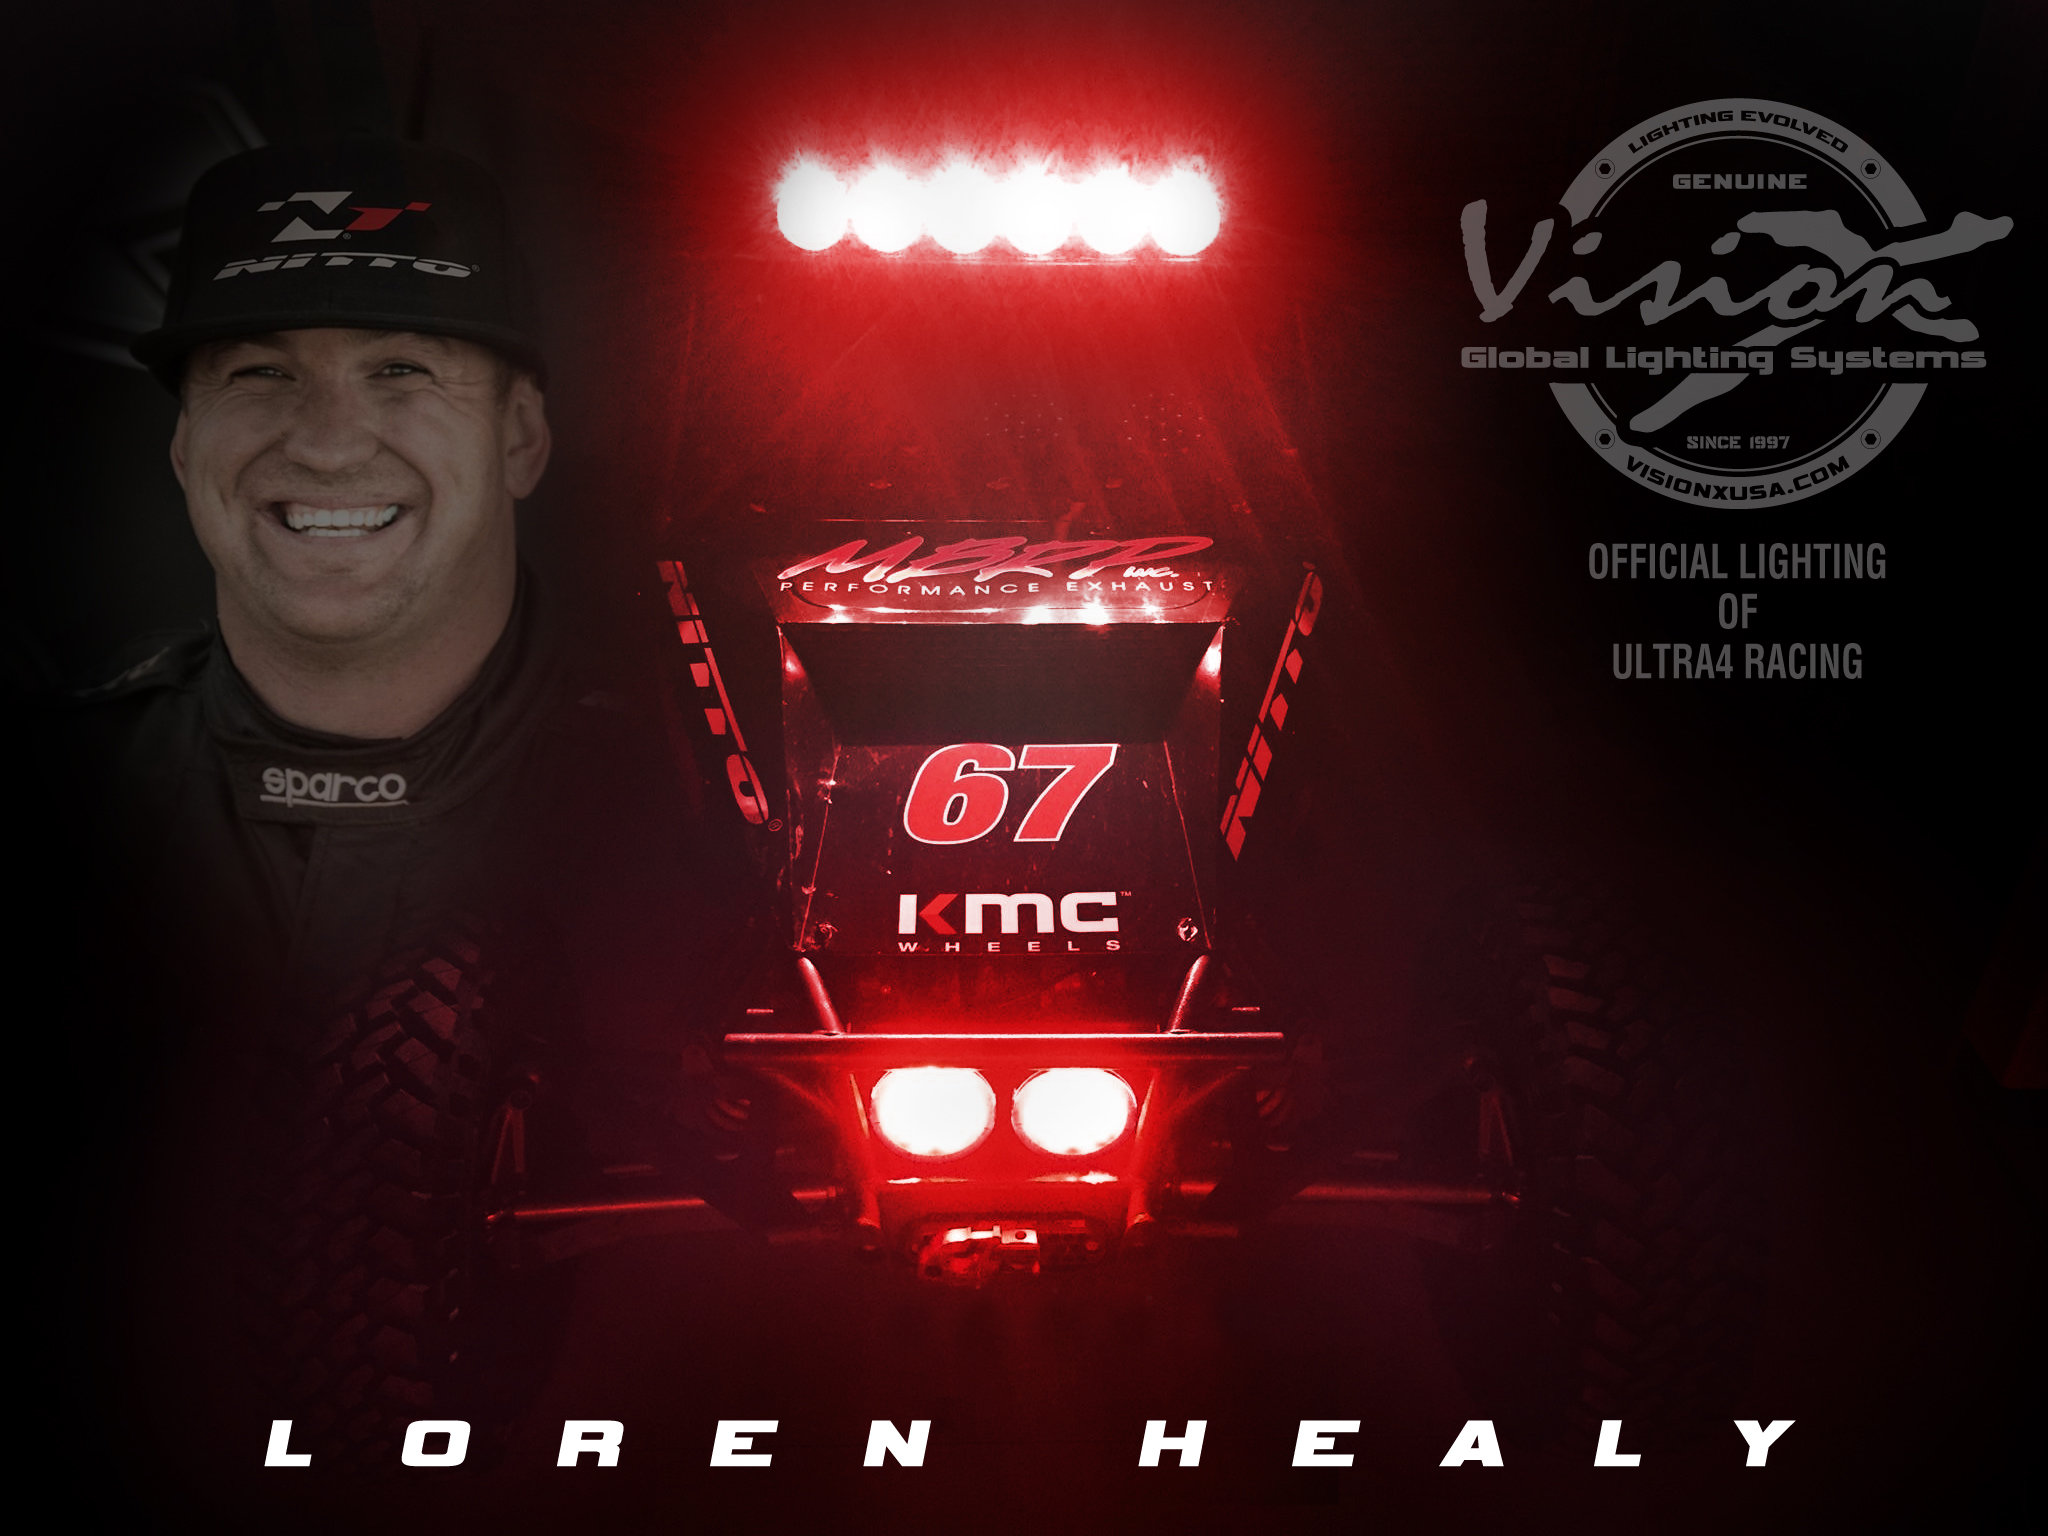 u201cAs a 5-Time ULTRA4 Racing Ch&ion and Two-Time King of the Hammers Winner Loren is looking to grow winning synergies for 2017.  sc 1 st  race-deZert.com & Two-Time King of the Hammers Winner Loren Healy Joins Vision X ... azcodes.com